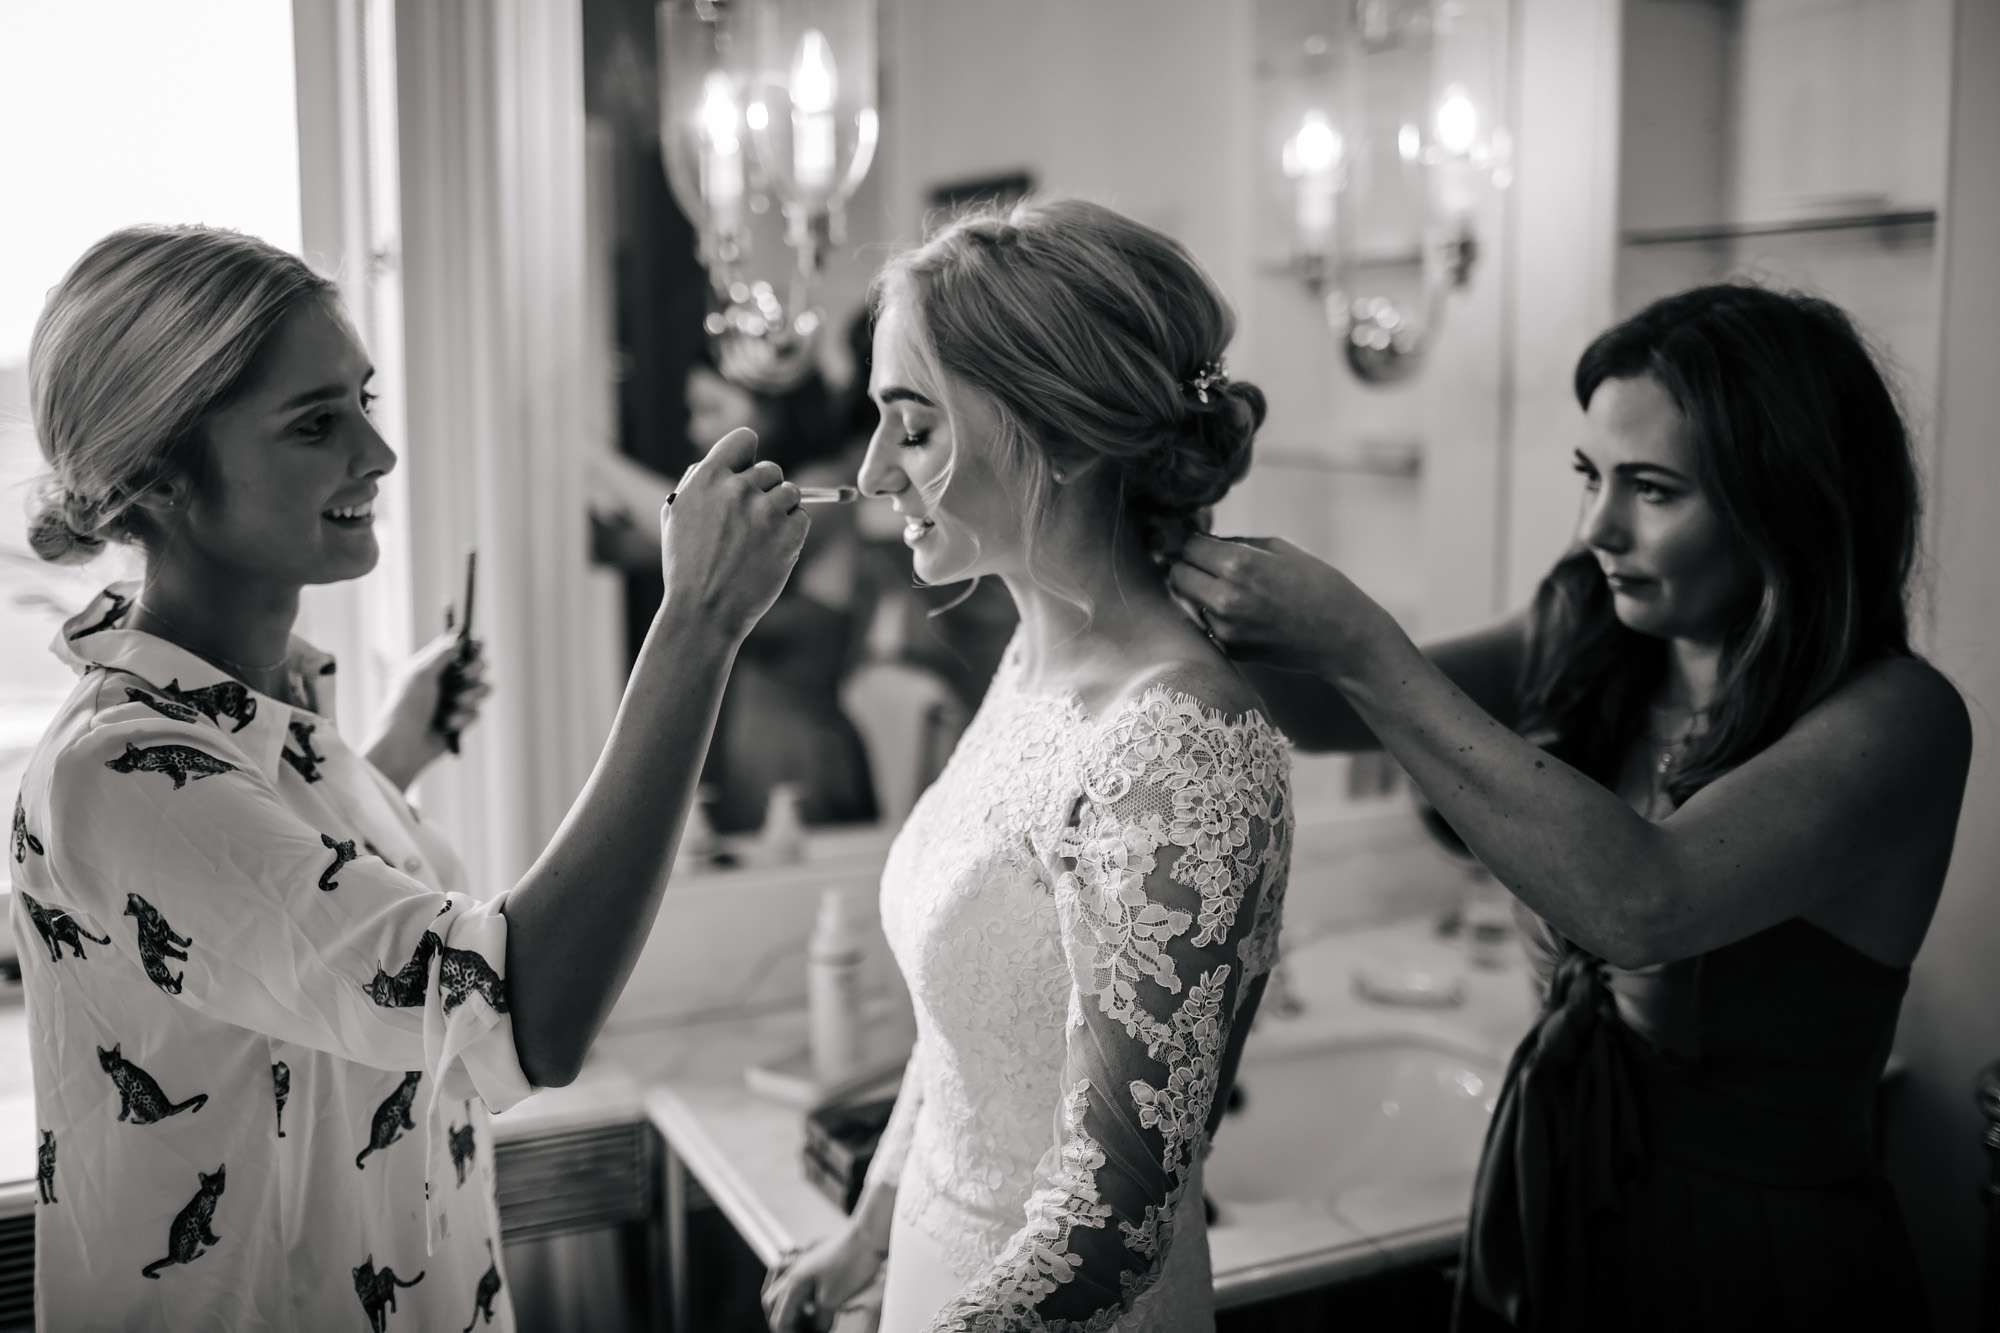 Wedding guests helping the bride get ready at her wedding